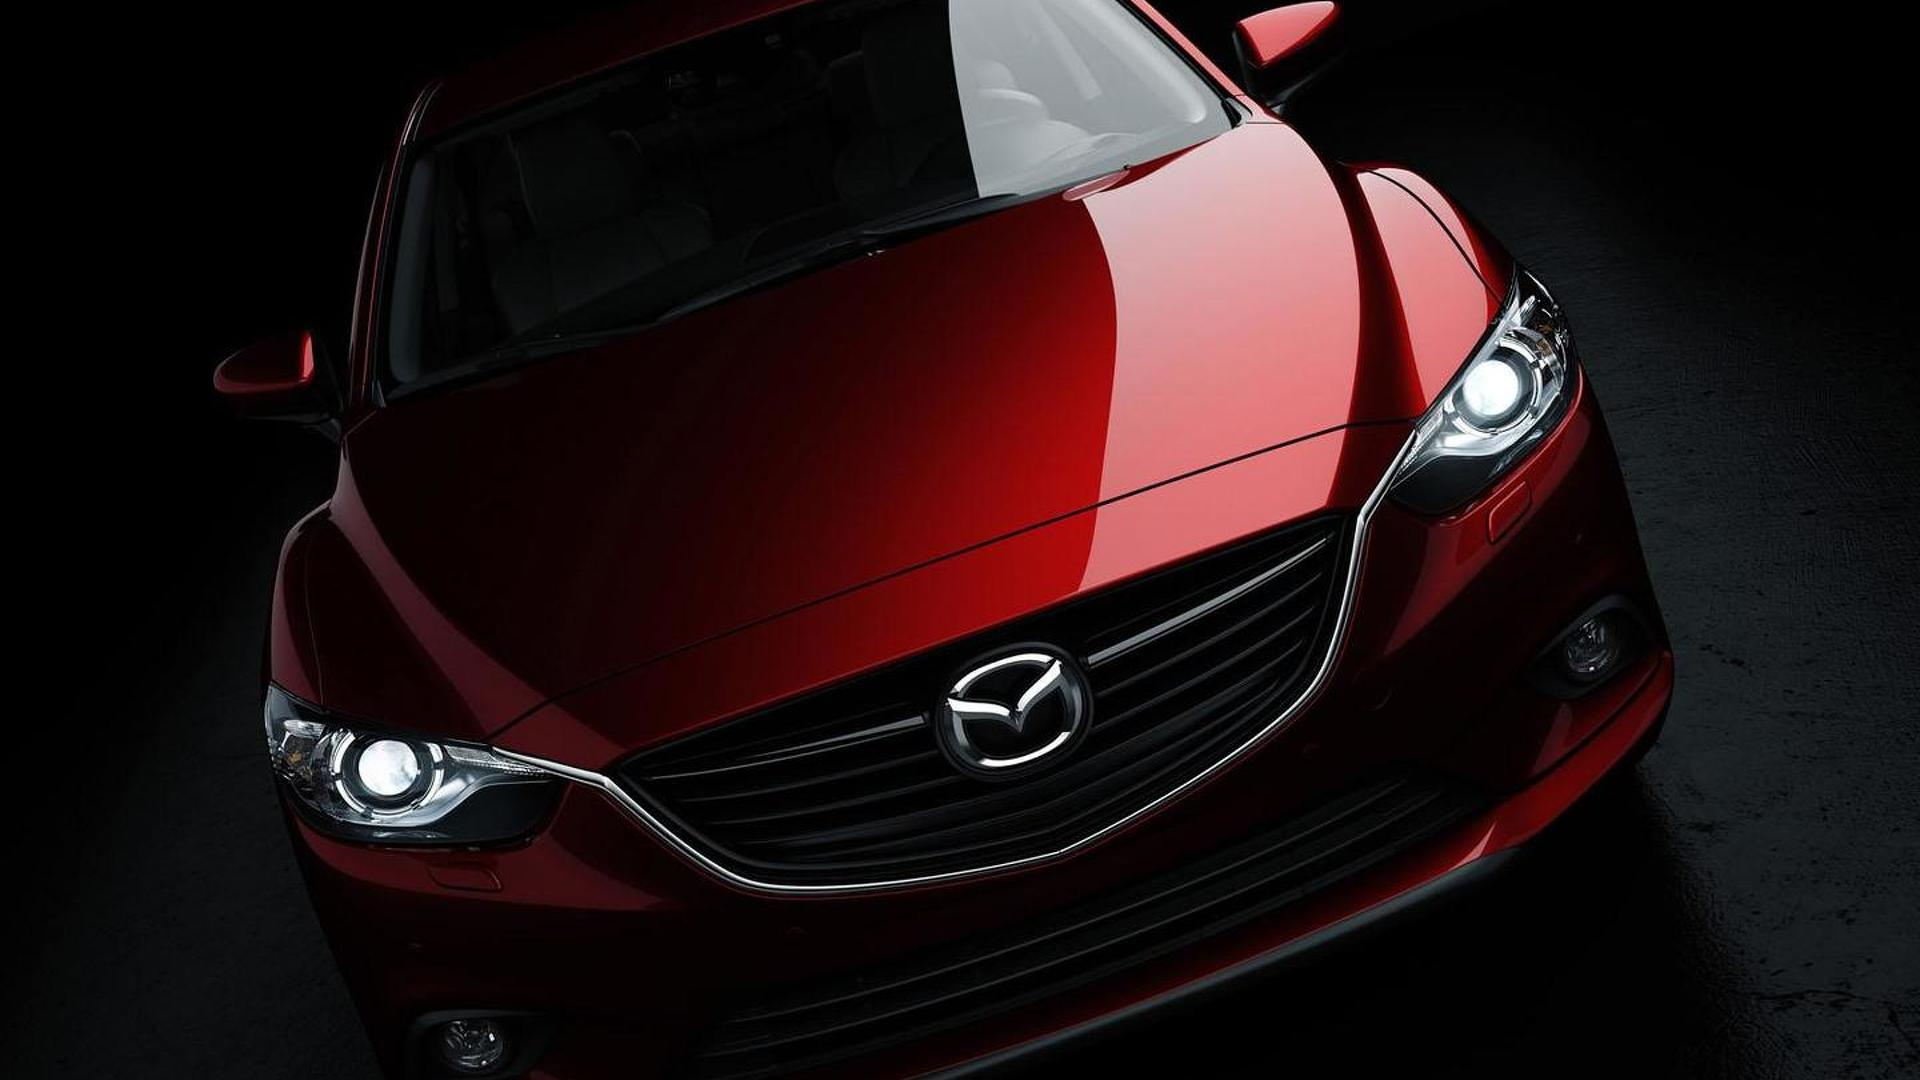 2014 Mazda6 revealed in first official image